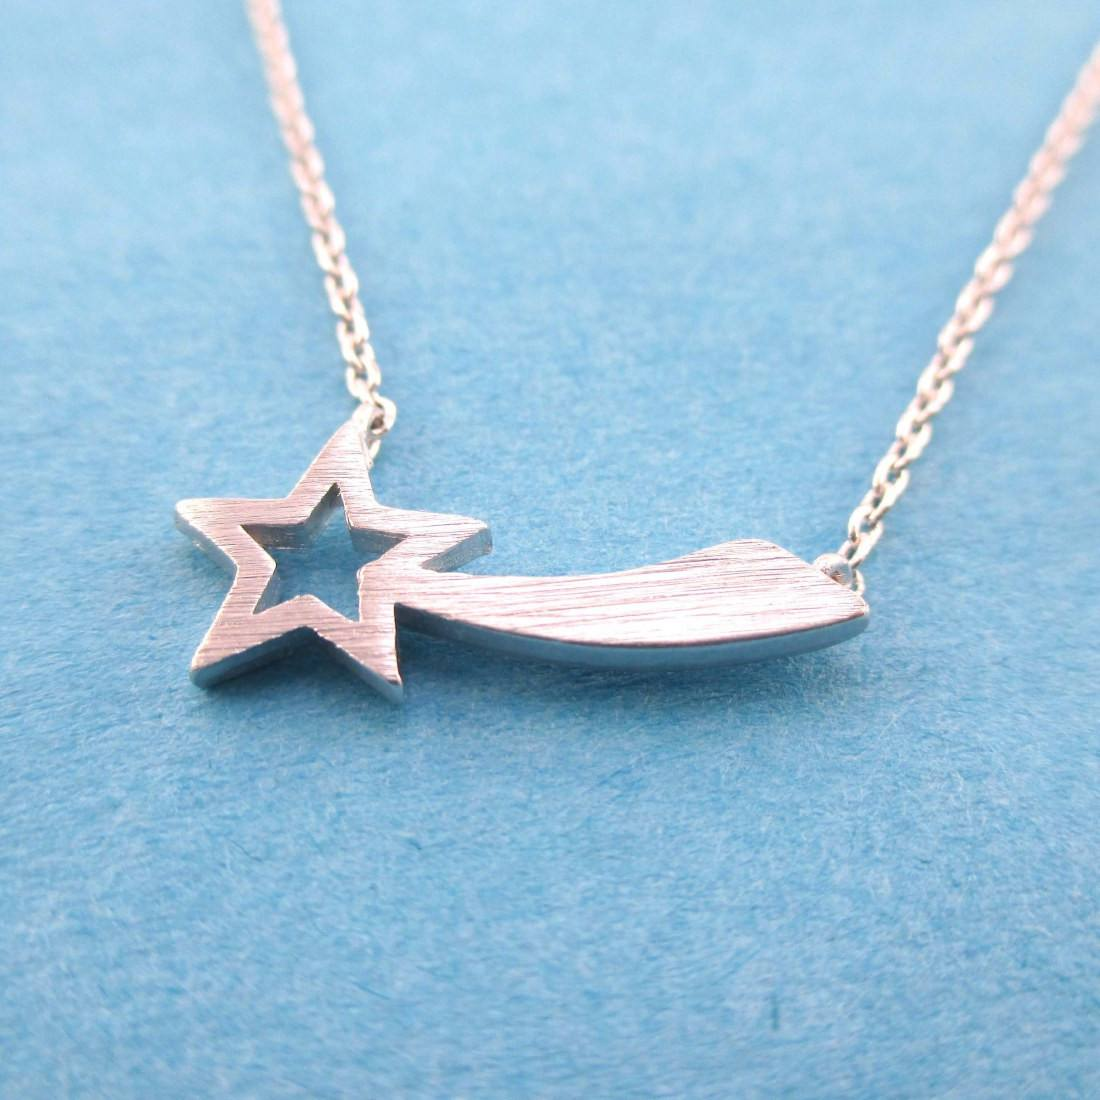 Shooting Star Shaped Make a Wish Pendant Necklace in Silver | DOTOLY